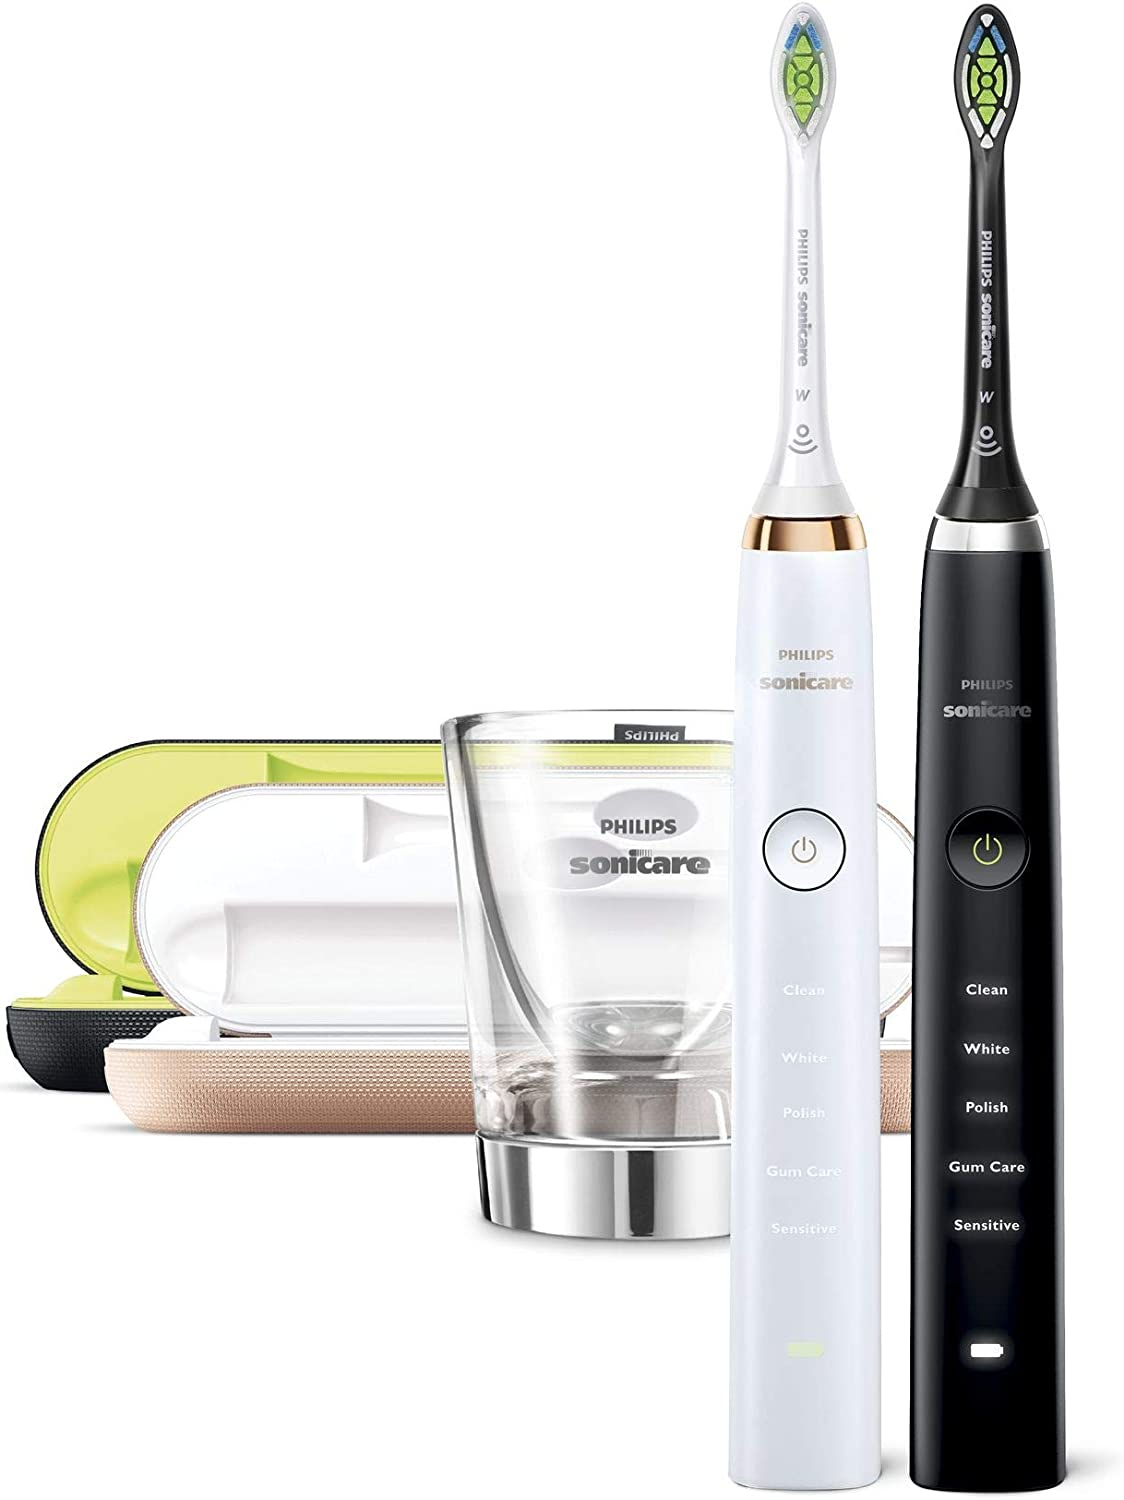 Philips Sonicare DiamondClean Electric Toothbrush Dual Handle Pack, Black with USB Charging Travel Case and Charging Glass (UK 2 Pin Bathroom Plug)